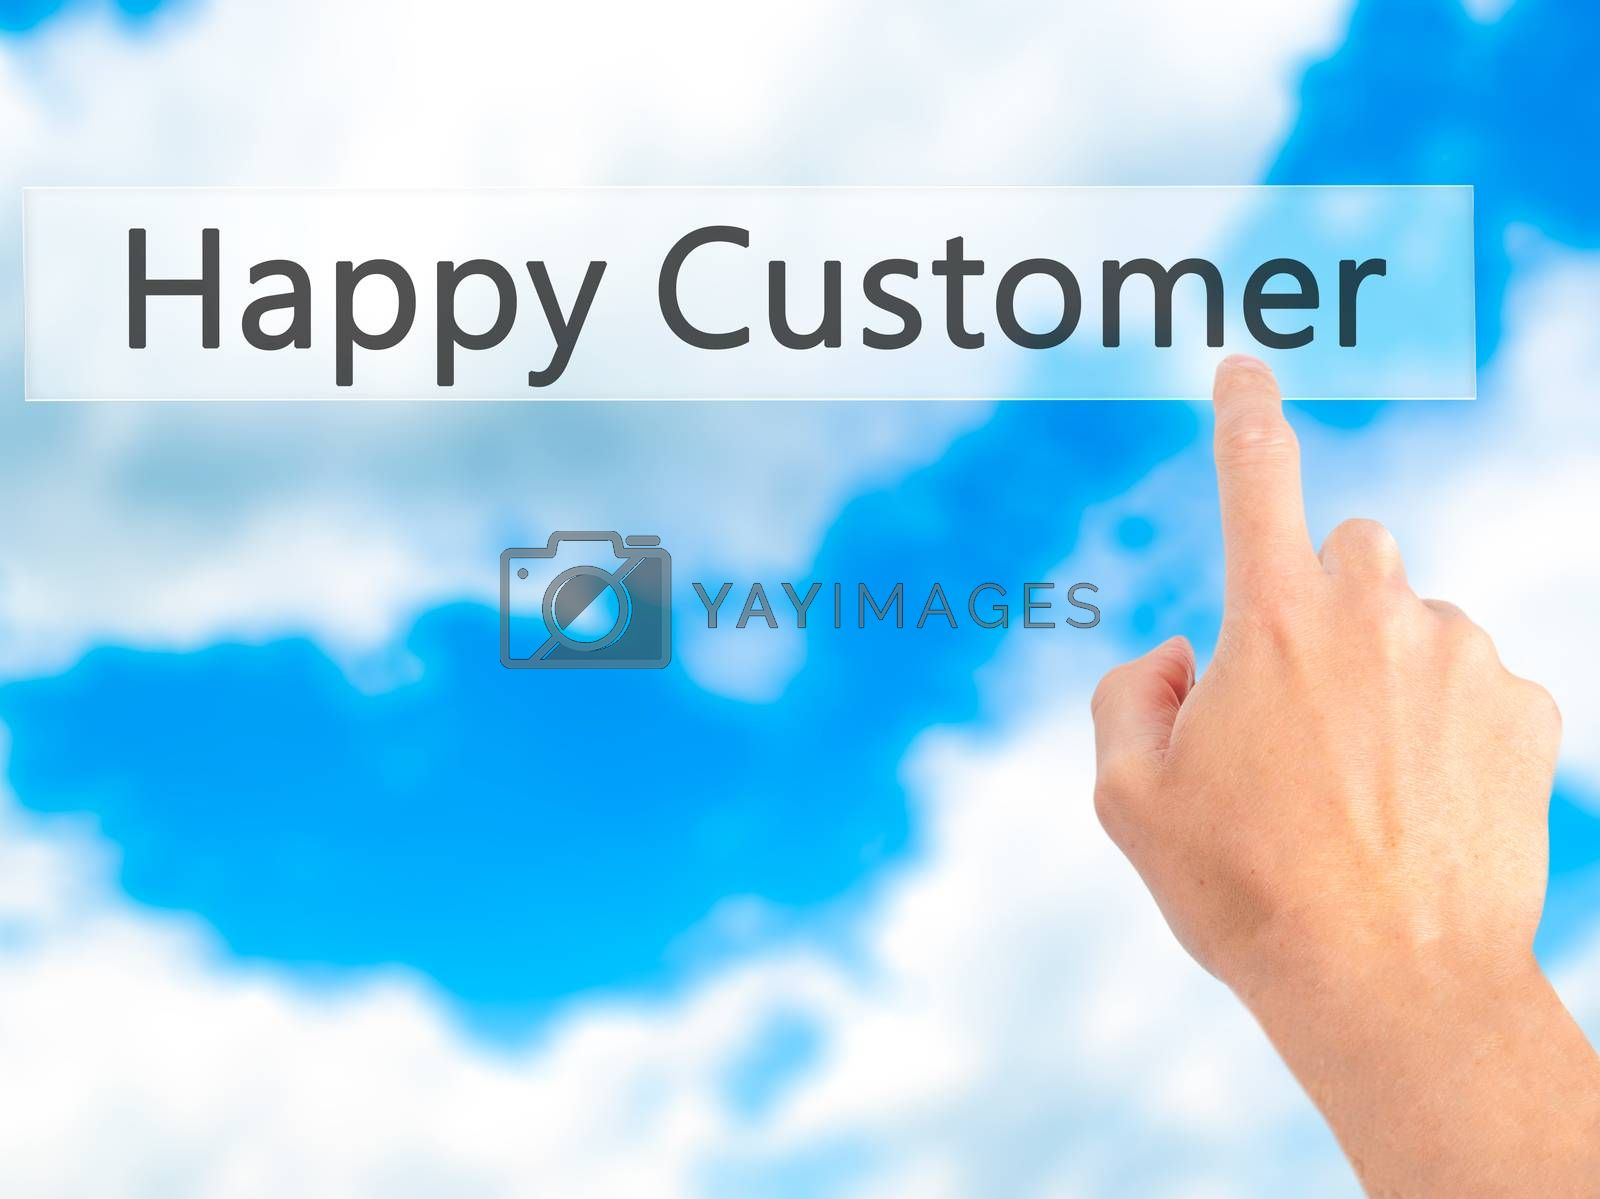 Happy Customer  - Hand pressing a button on blurred background c by netsay.net